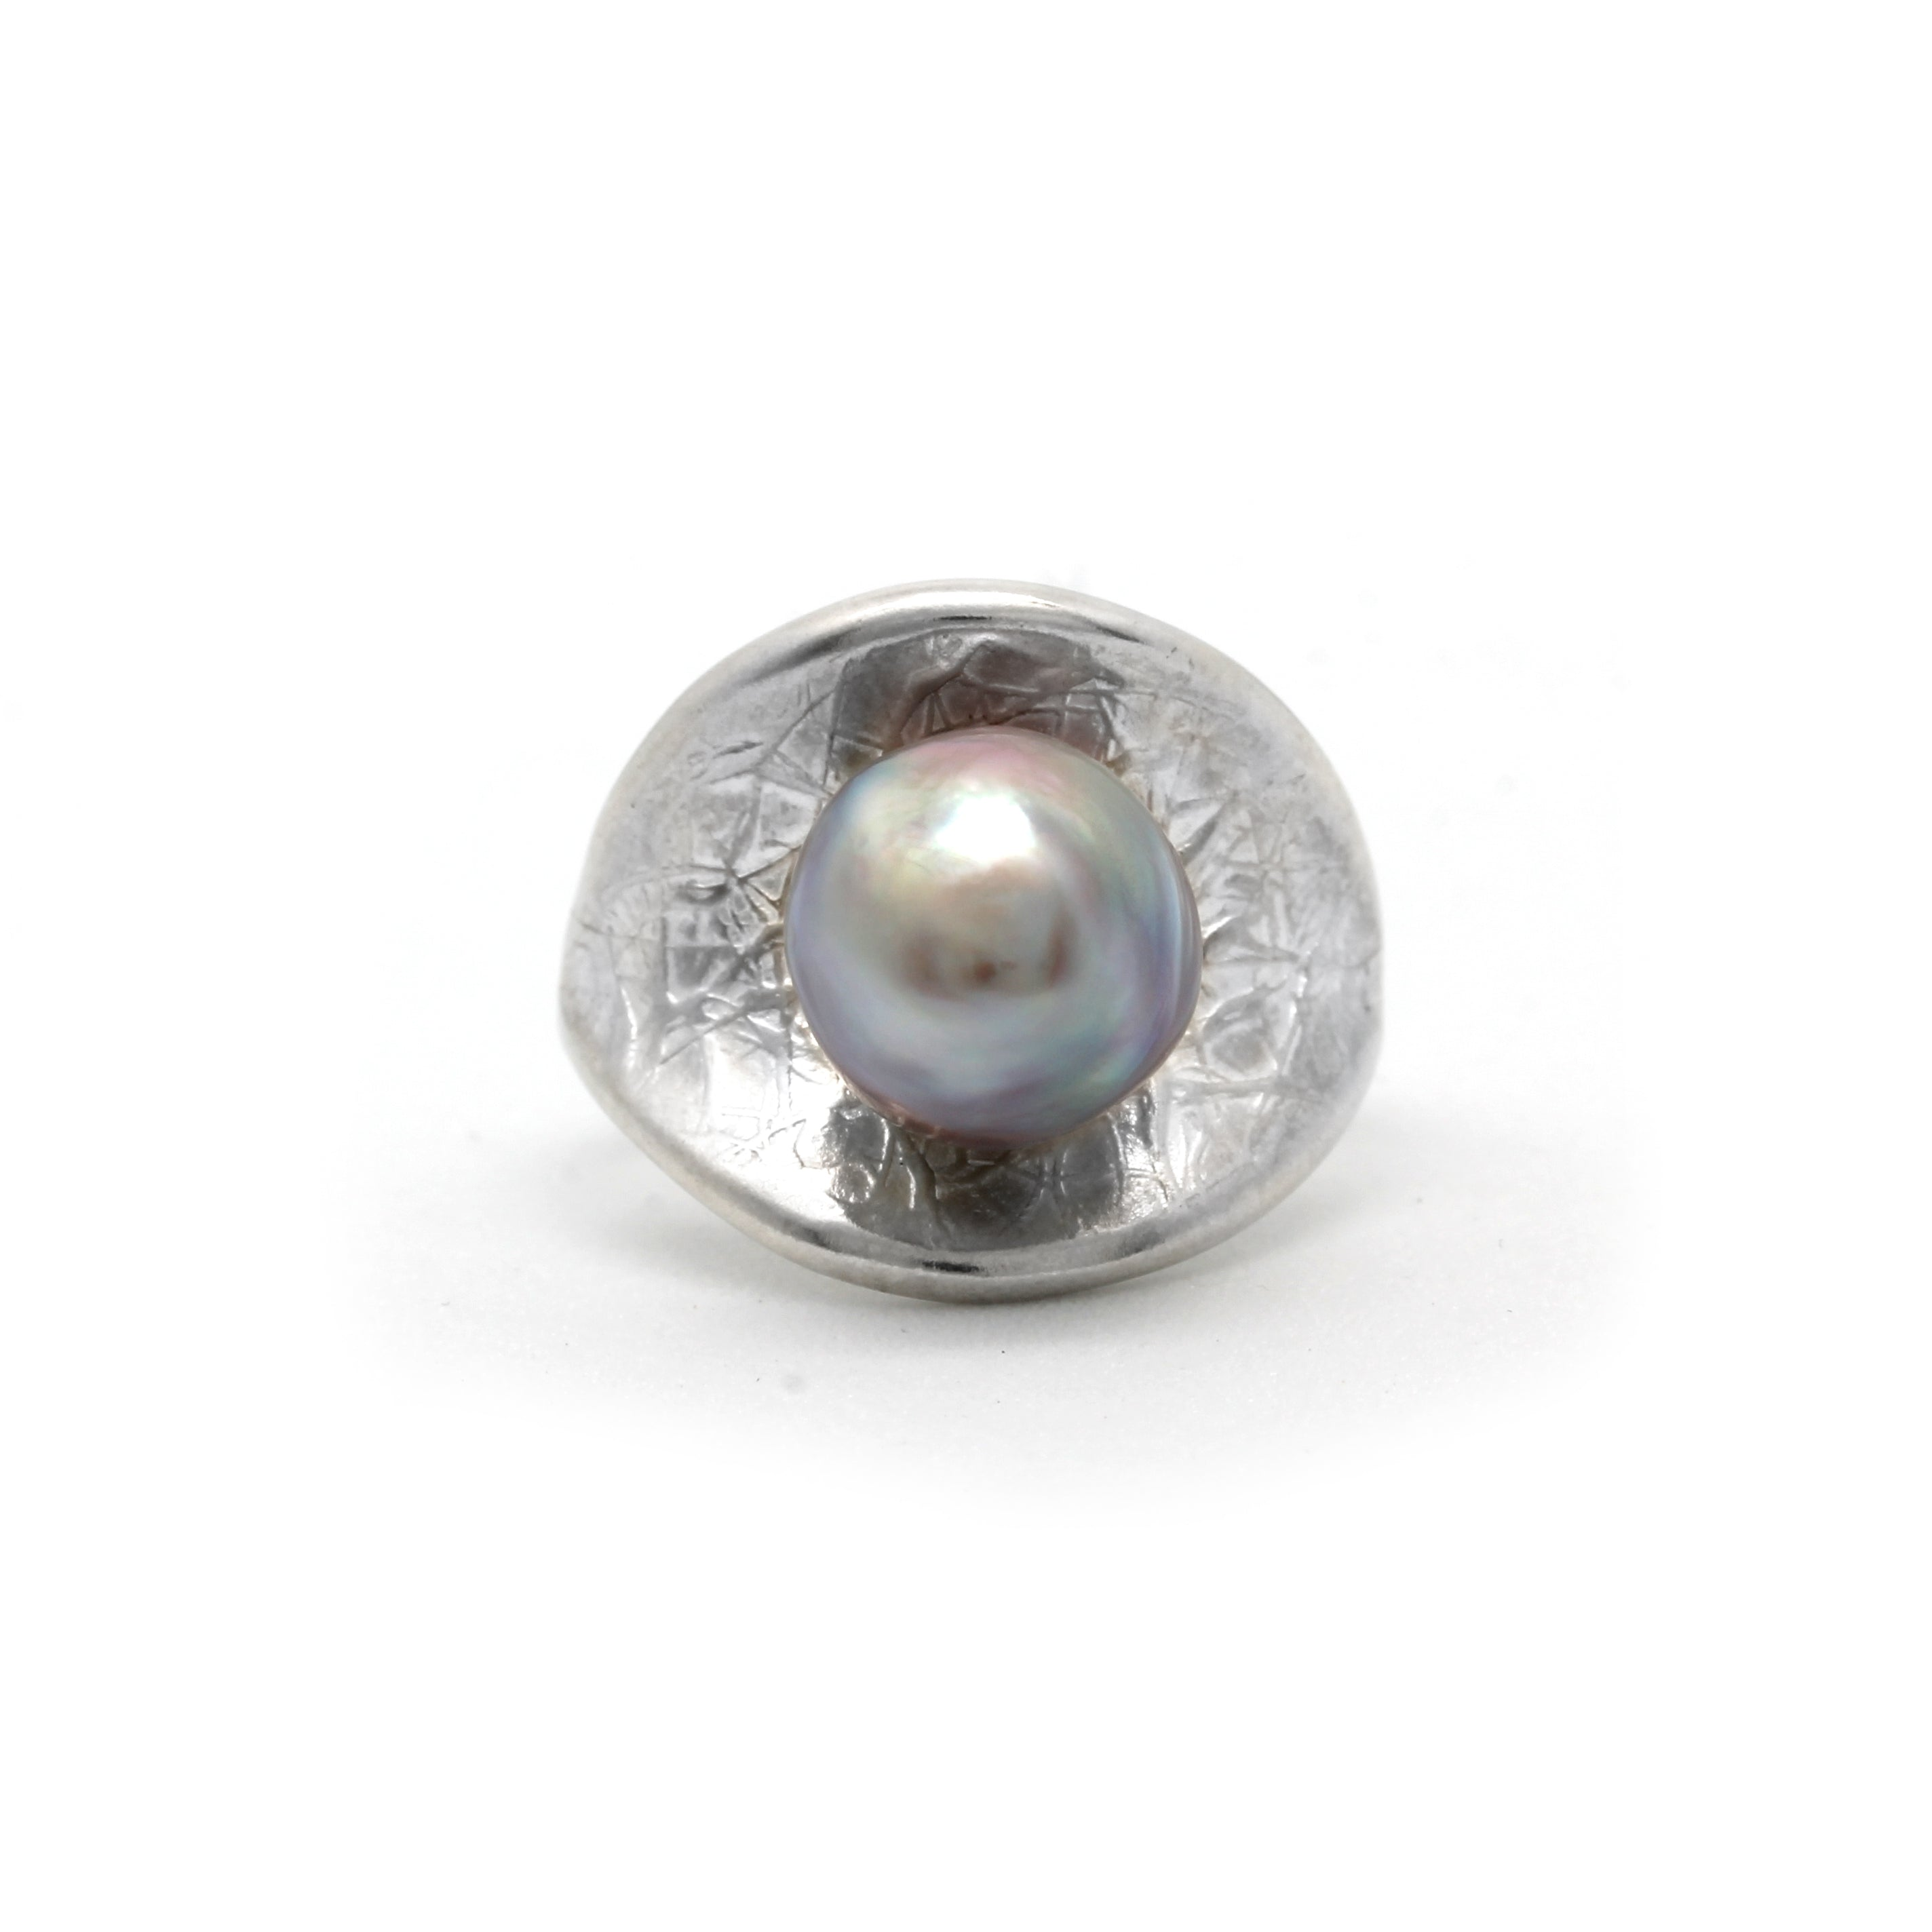 """Mars"" Silver Ring with Cortez Pearl - Size 7.5"